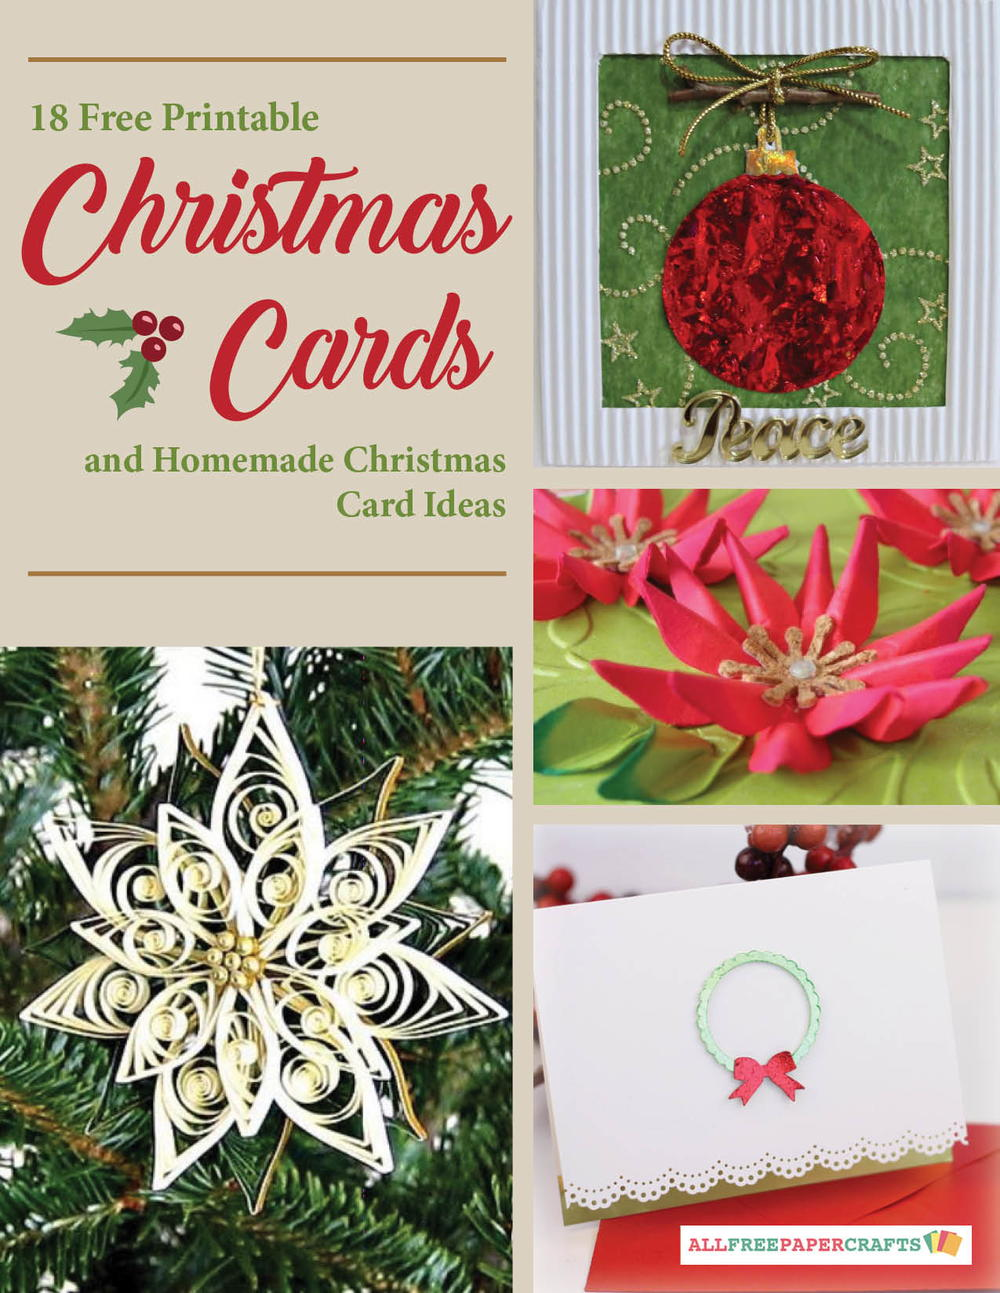 18 Free Printable Christmas Cards and Homemade Christmas Card Ideas ...